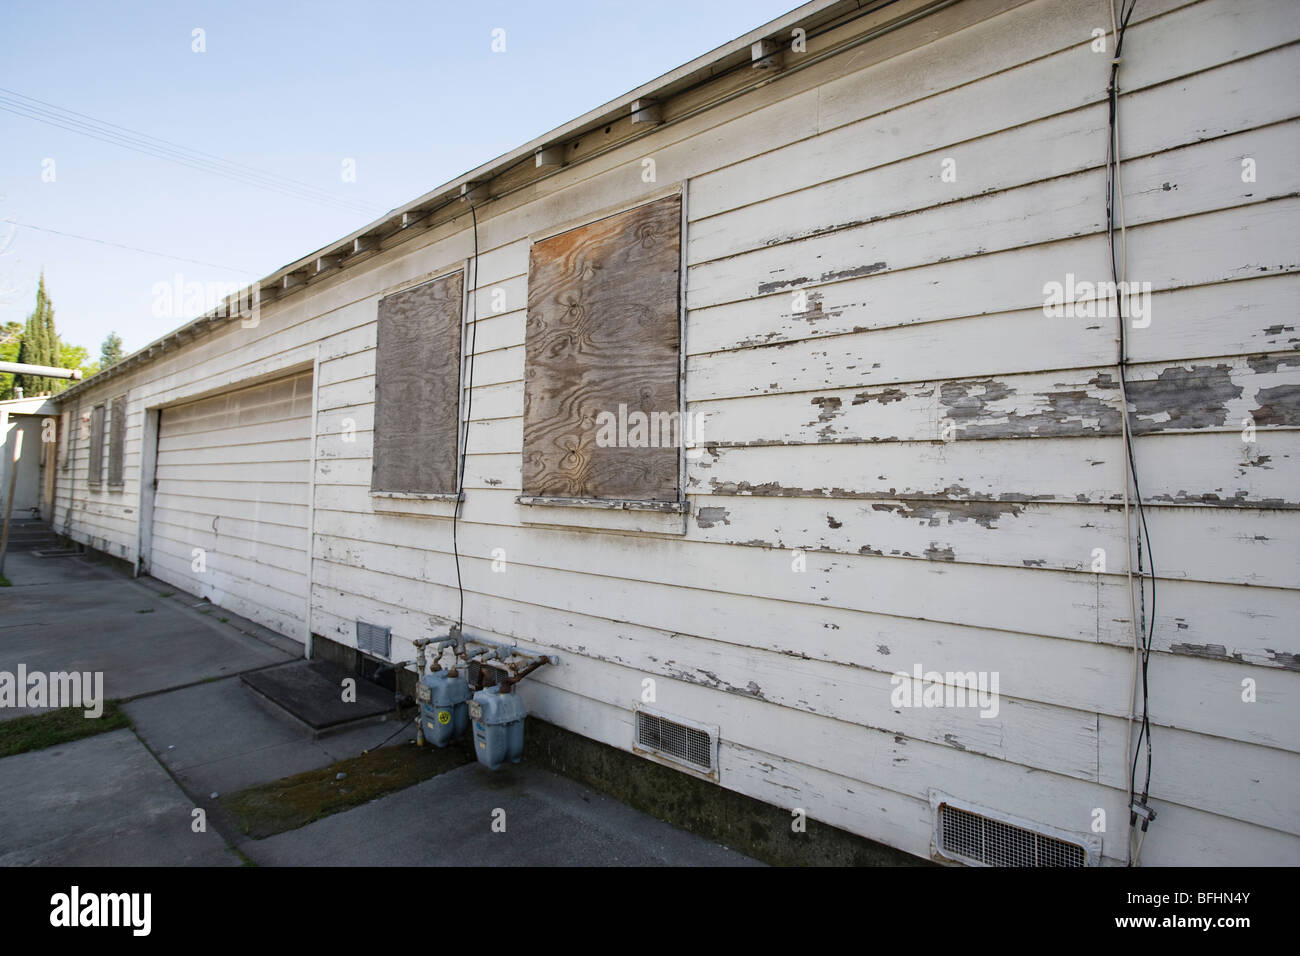 Abandoned Building With Boarded Windows and Peeling Paint - Stock Image